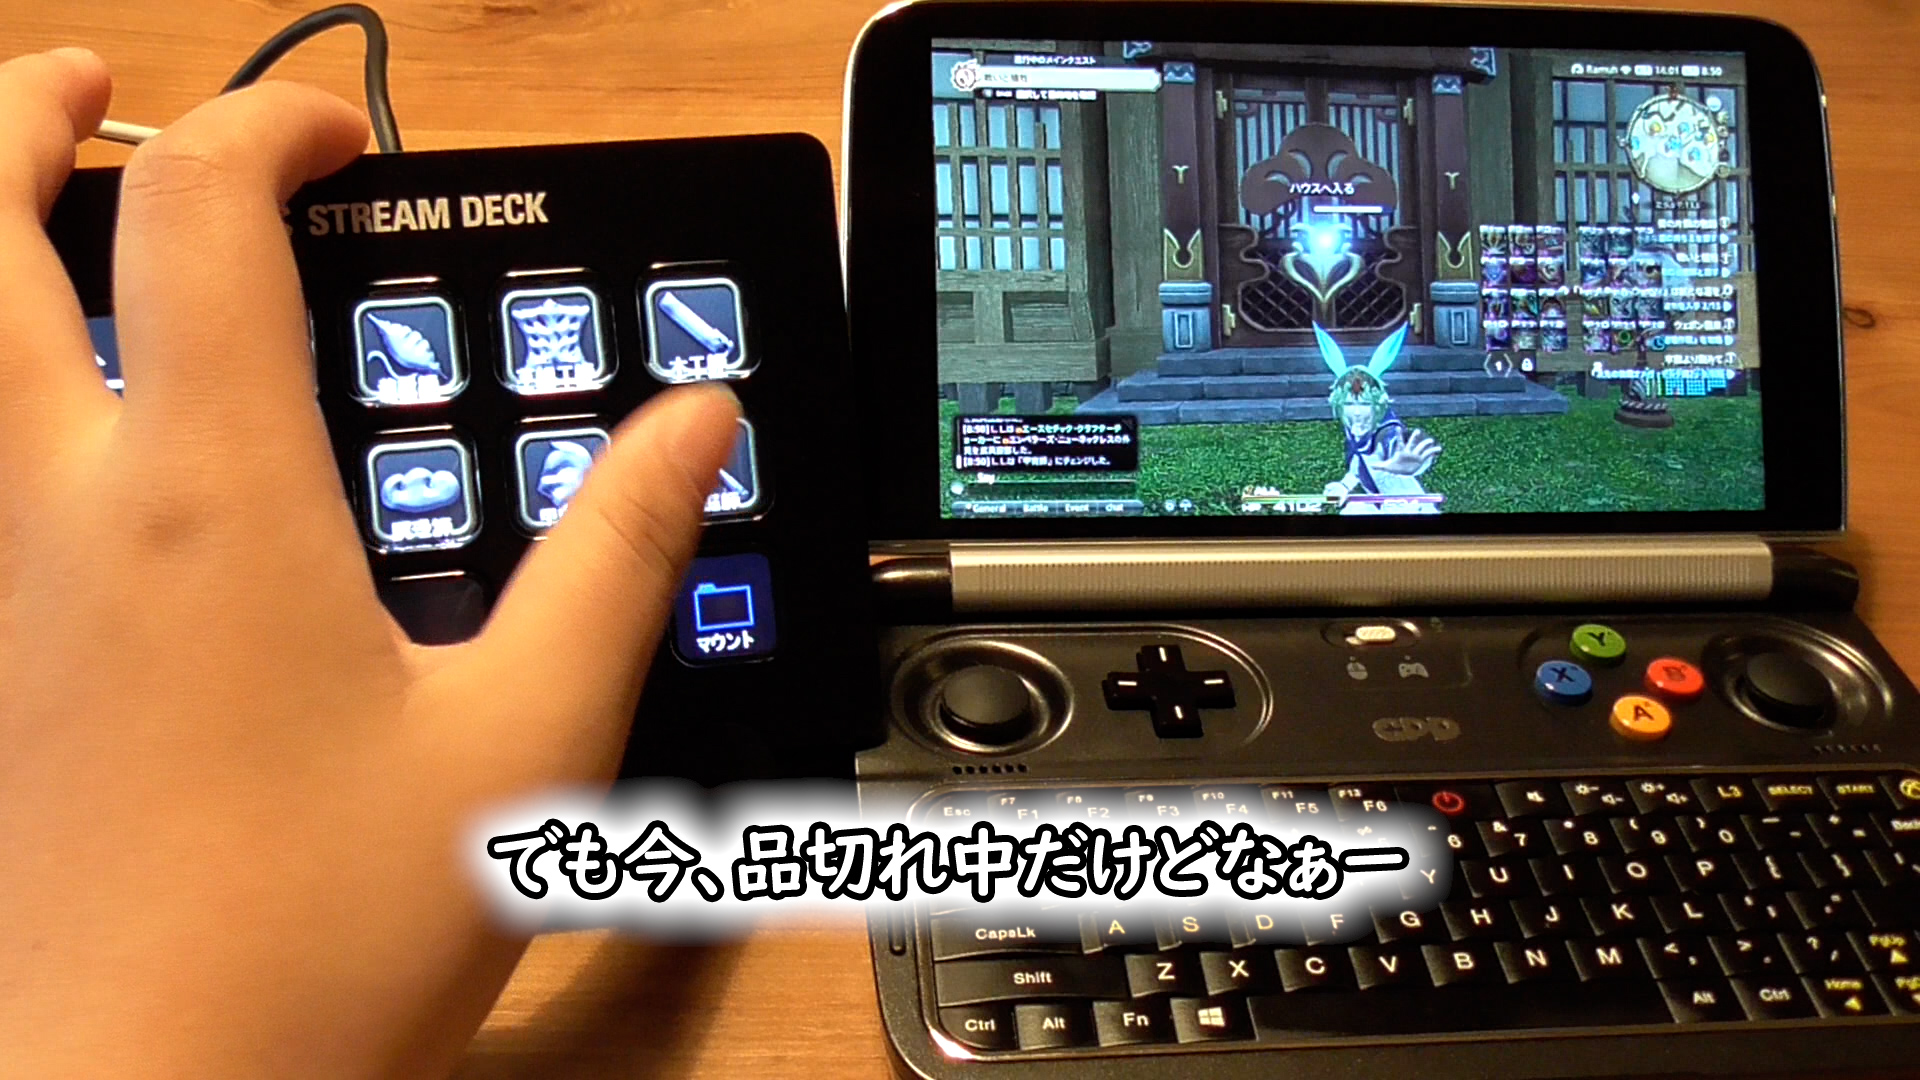 stream deck mobile